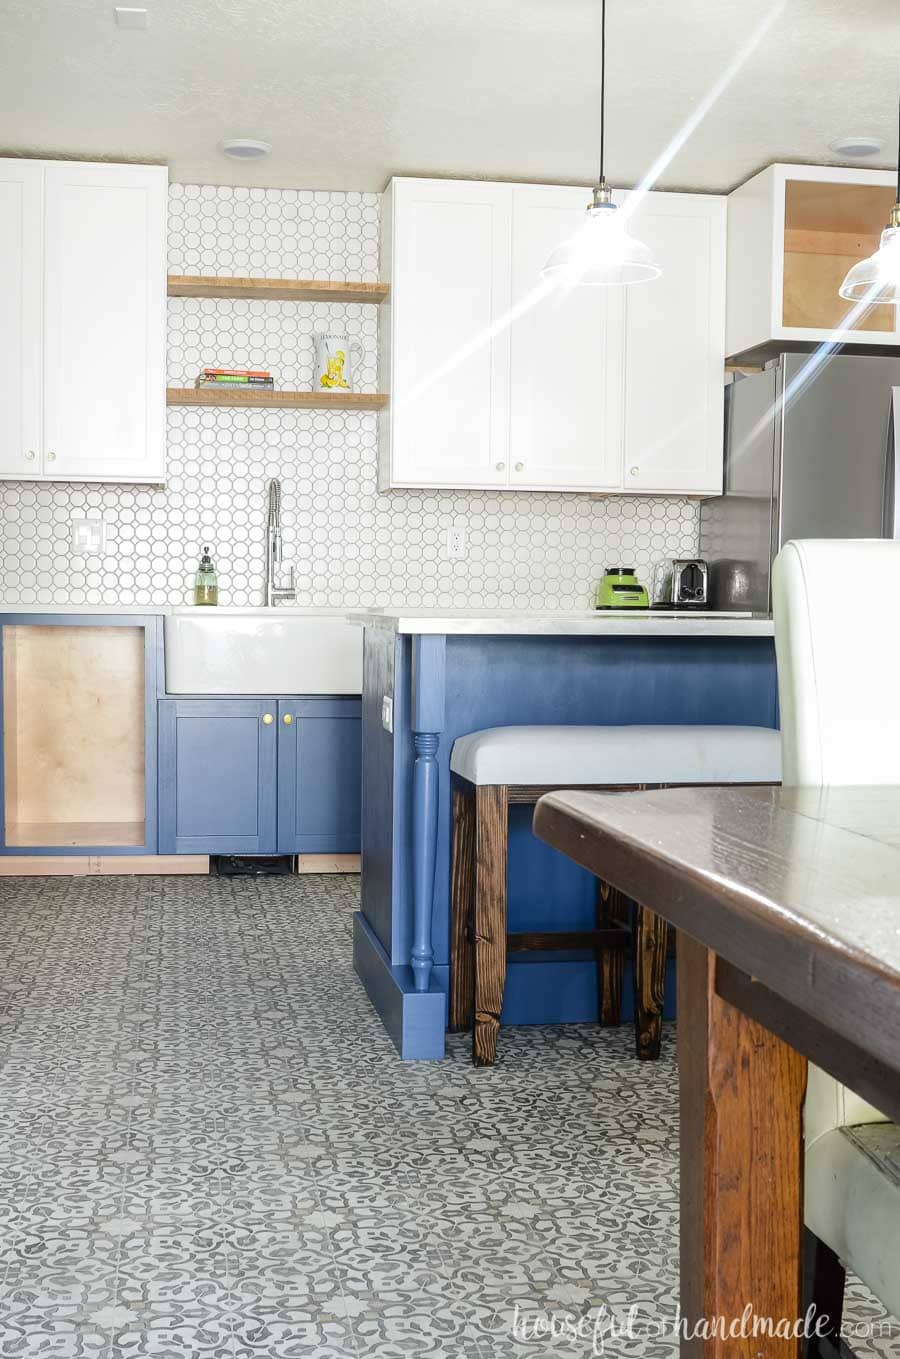 Stunning white and navy farmhouse kitchen. The kitchen island looks like a piece of furniture in the center of the kitchen and the open shelves above the farmhouse sink keep the space bright and open. Housefulofhandmade.com